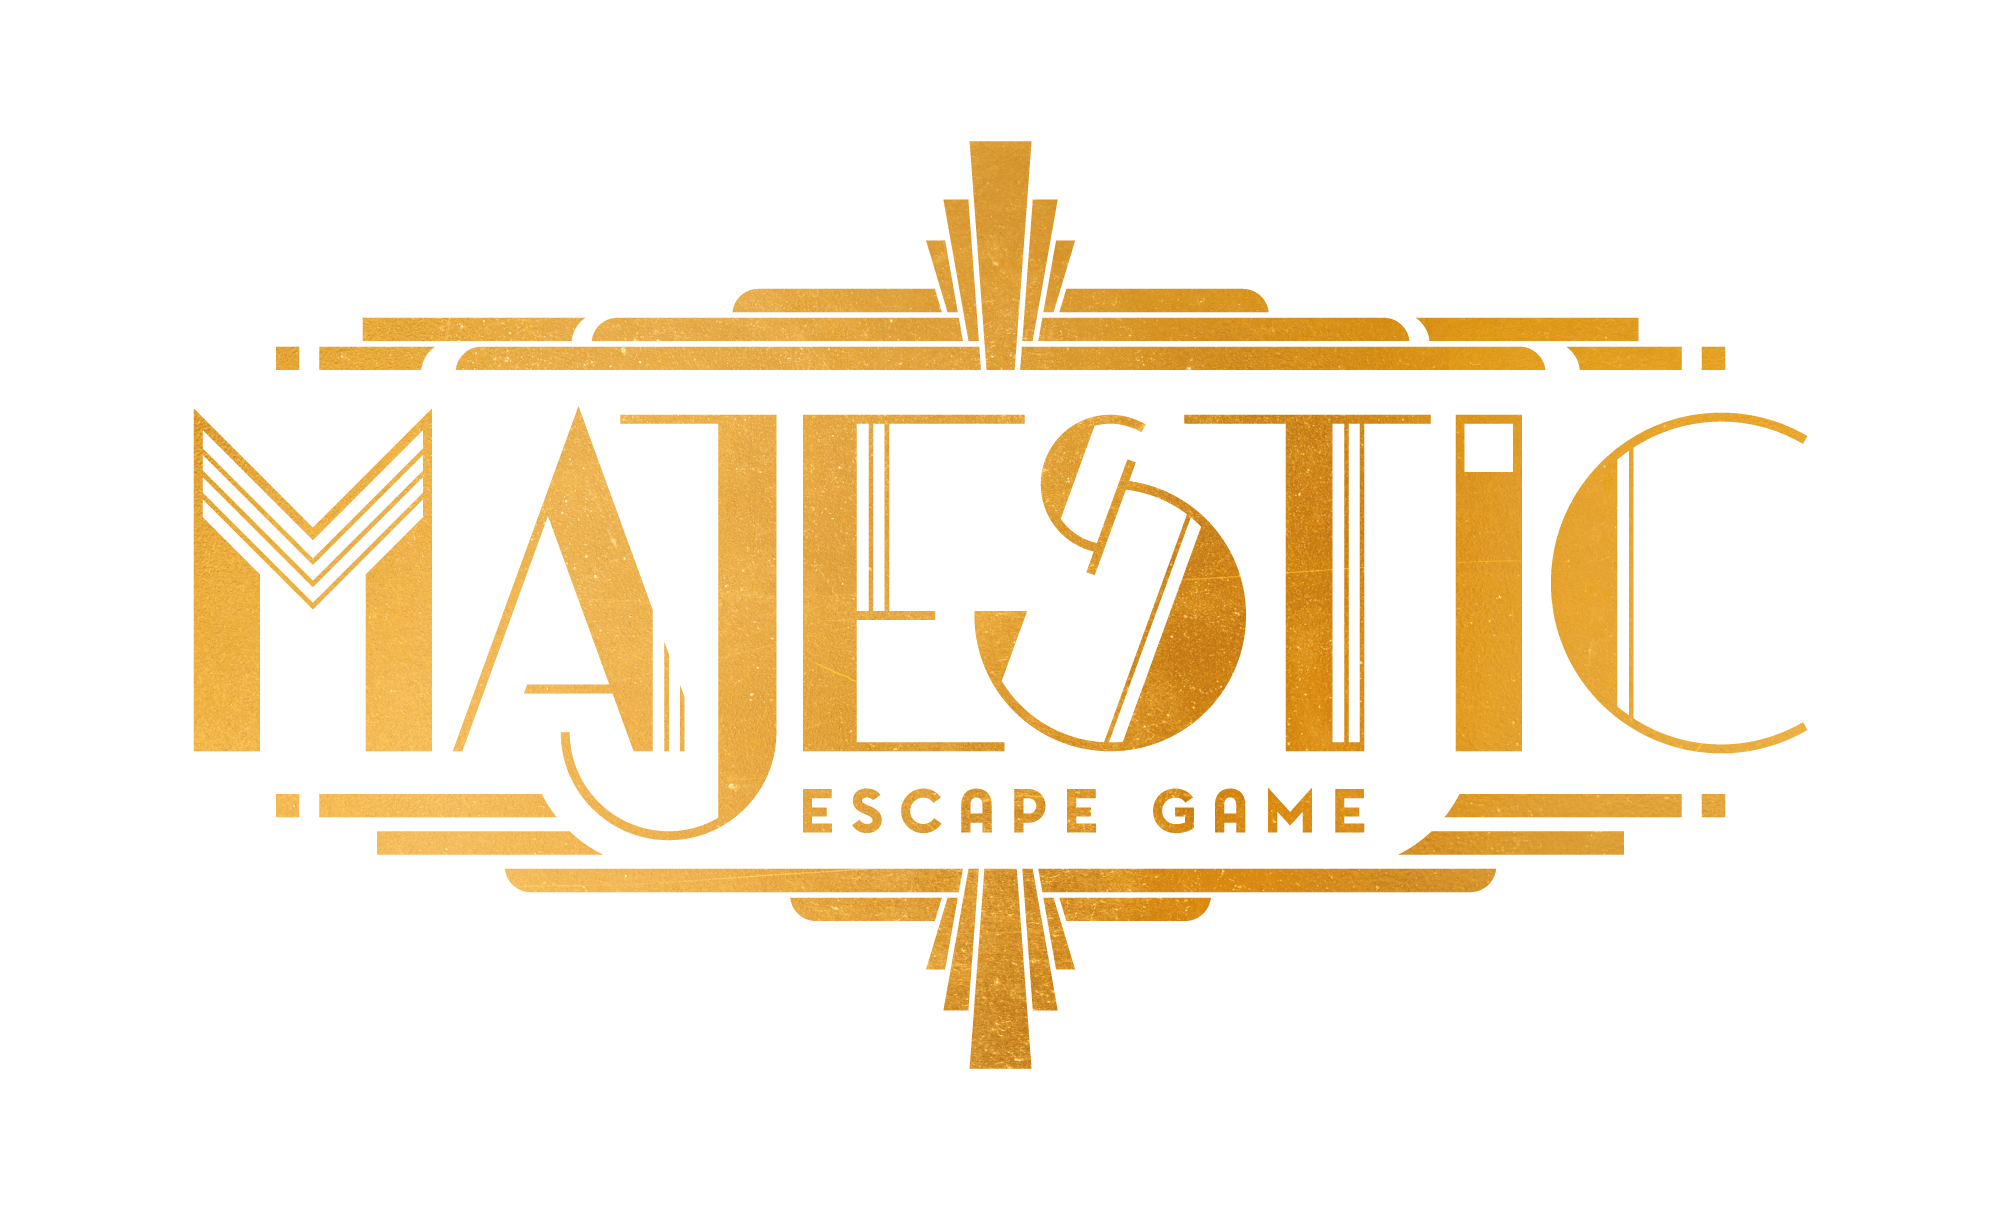 Logo de Majestic Escape Game